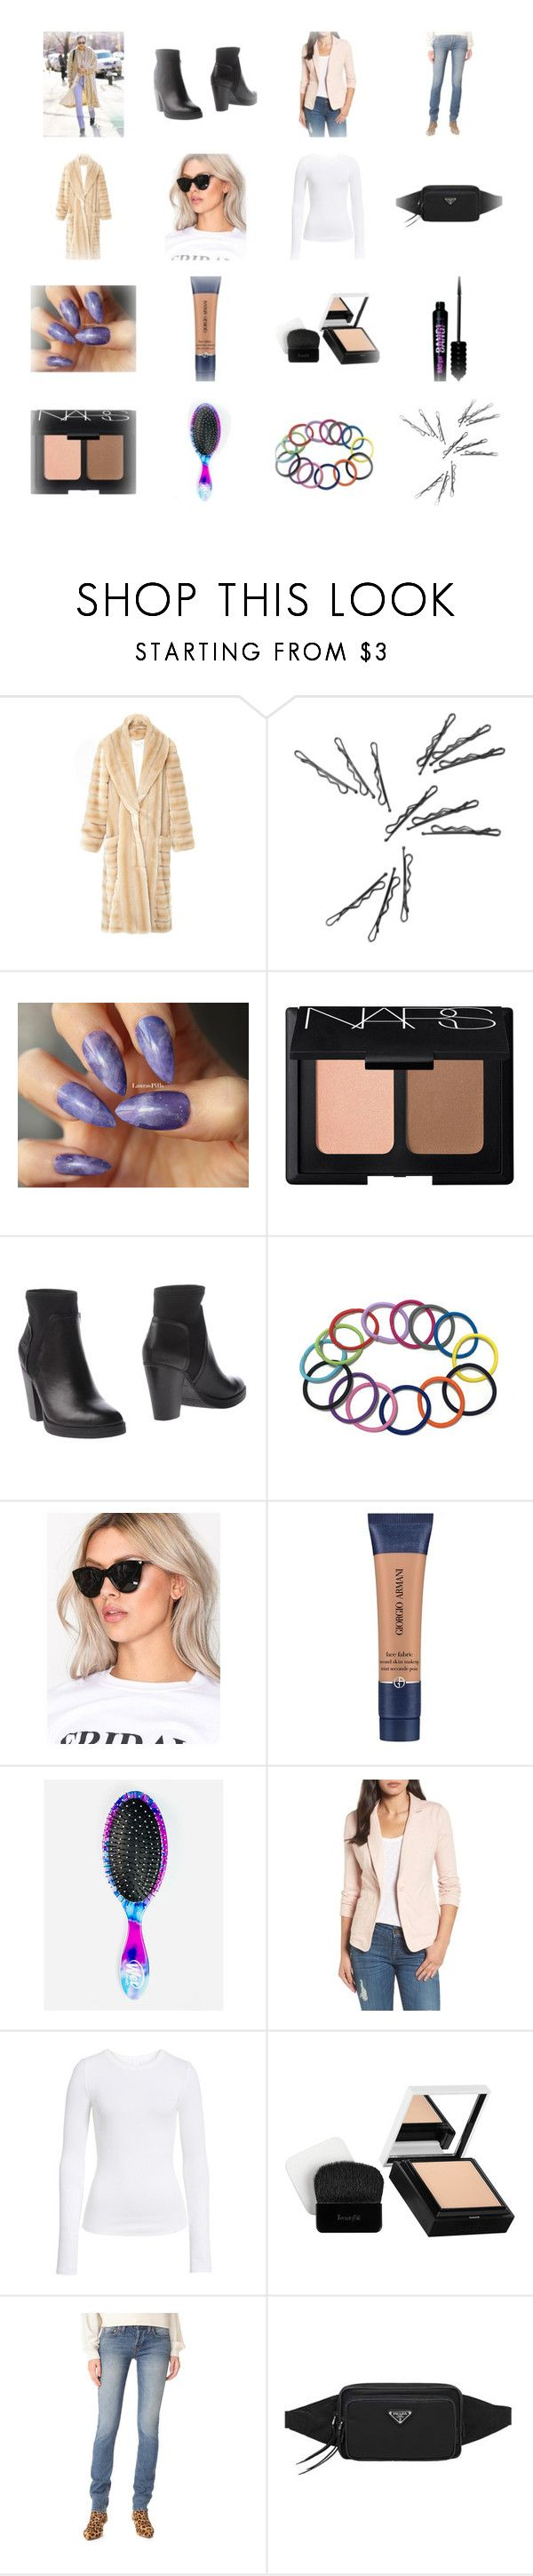 """""""Bella Hadid"""" by cheapchicceleb ❤ liked on Polyvore featuring NARS Cosmetics, Fornarina, Pieces, Giorgio Armani, The Wet Brush, Caslon, BP., Benefit and RE/DONE"""